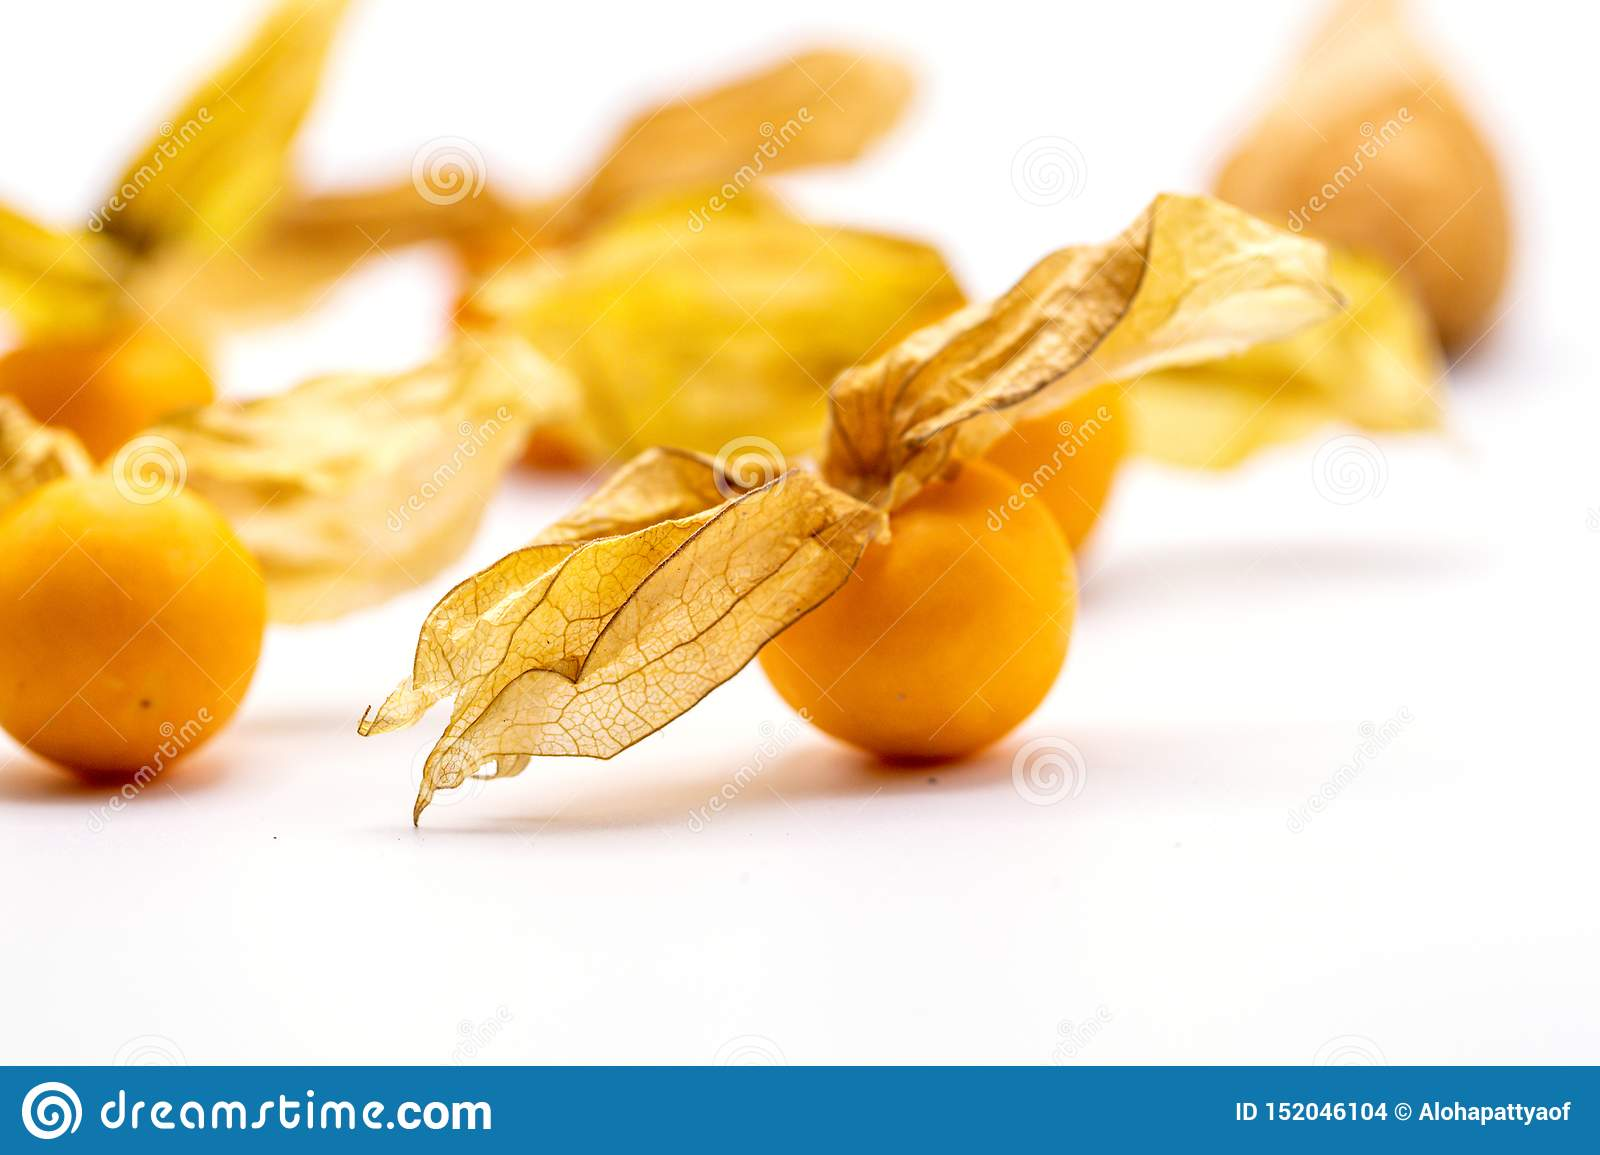 Cape Gooseberry Fruits Physalis Peruviana On White